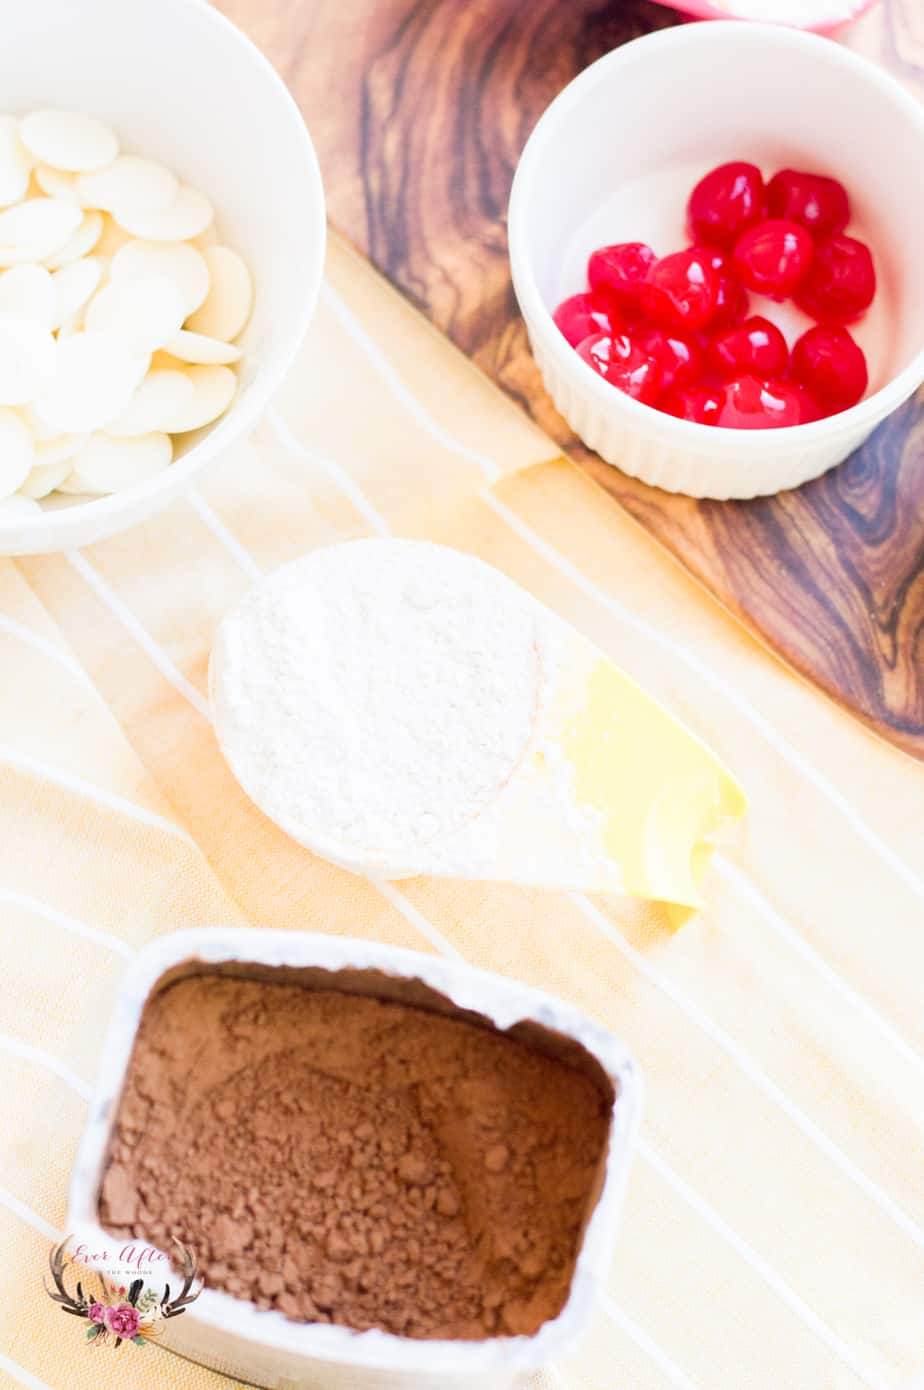 We love to make large batches of cookies for friends and families and these chocolate cherry cookies are the perfect addition to your cookie tray this year.